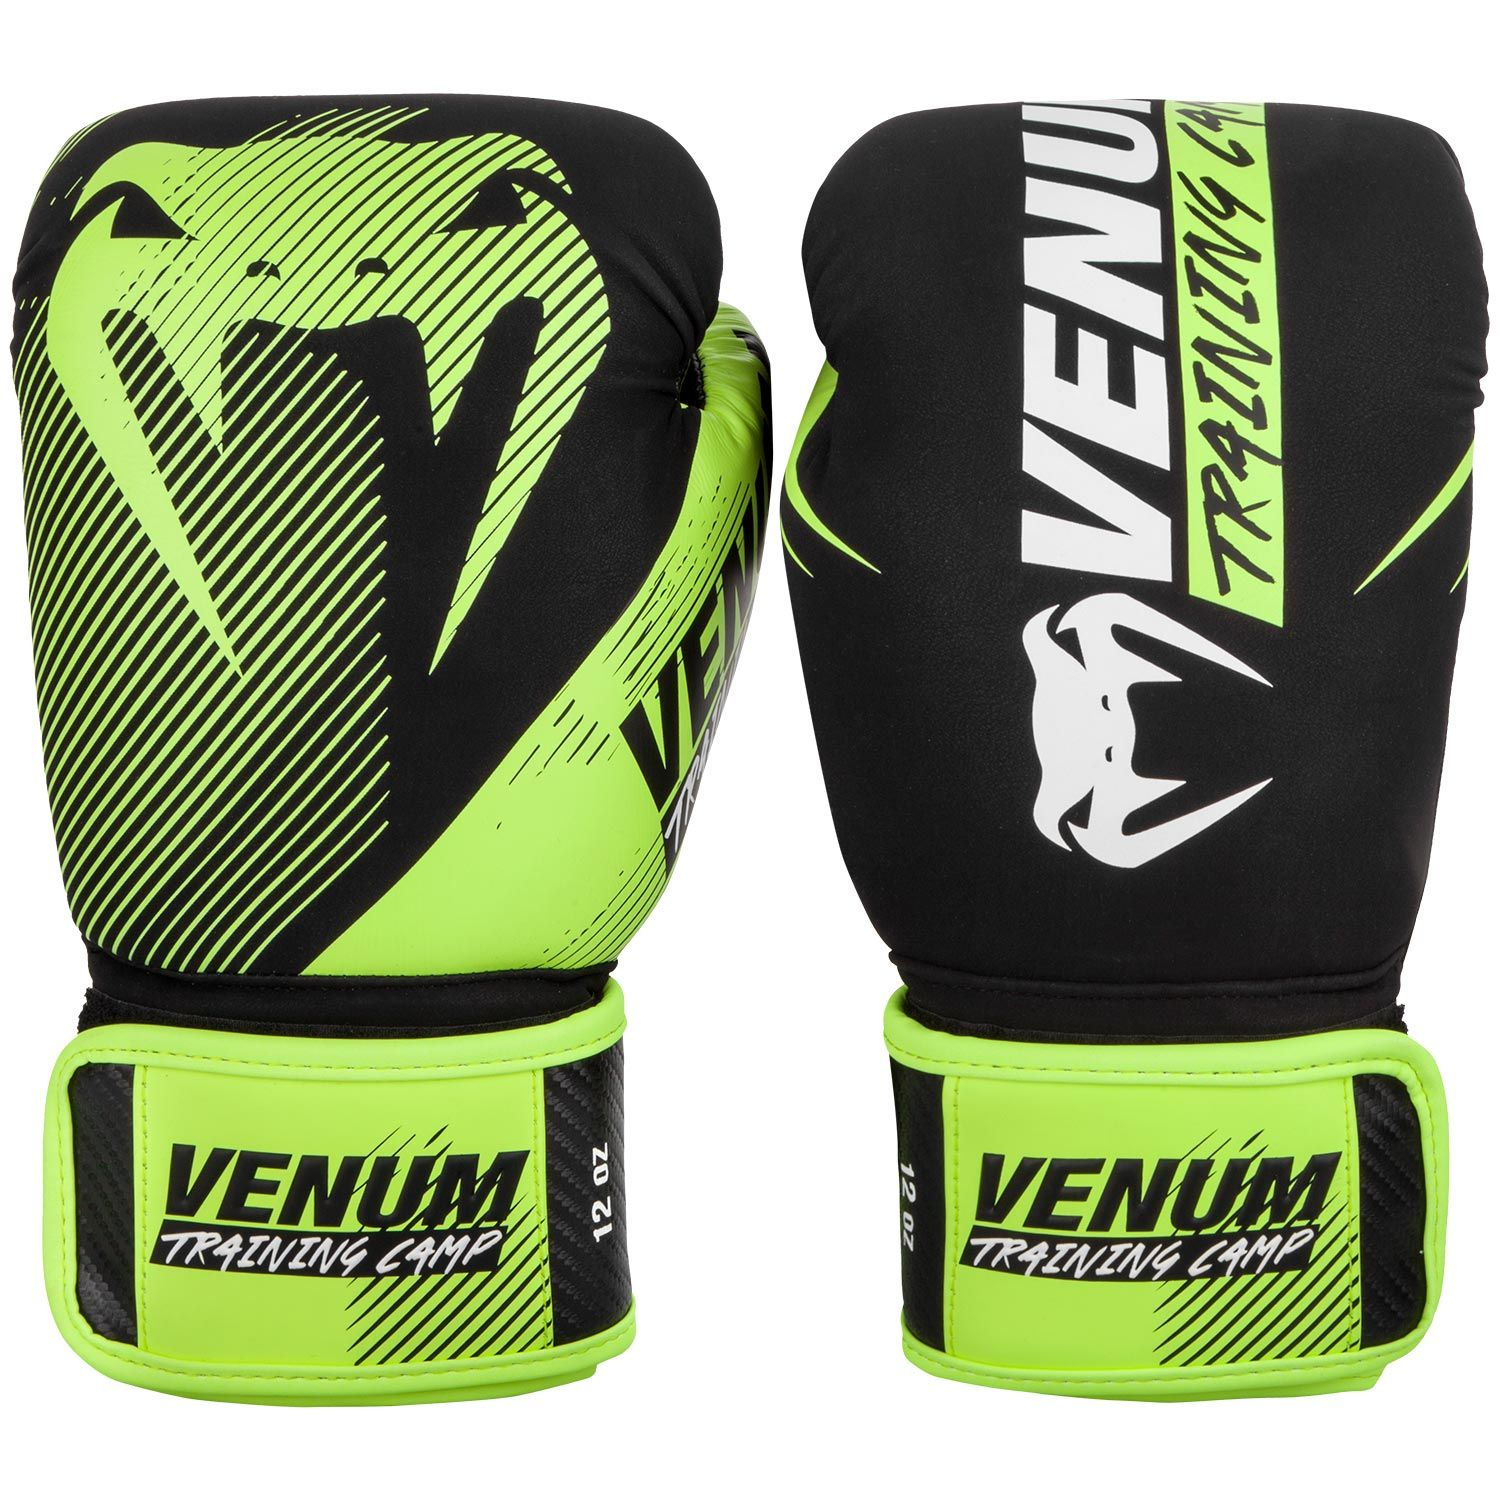 Gants de boxe Venum training camp 2.0